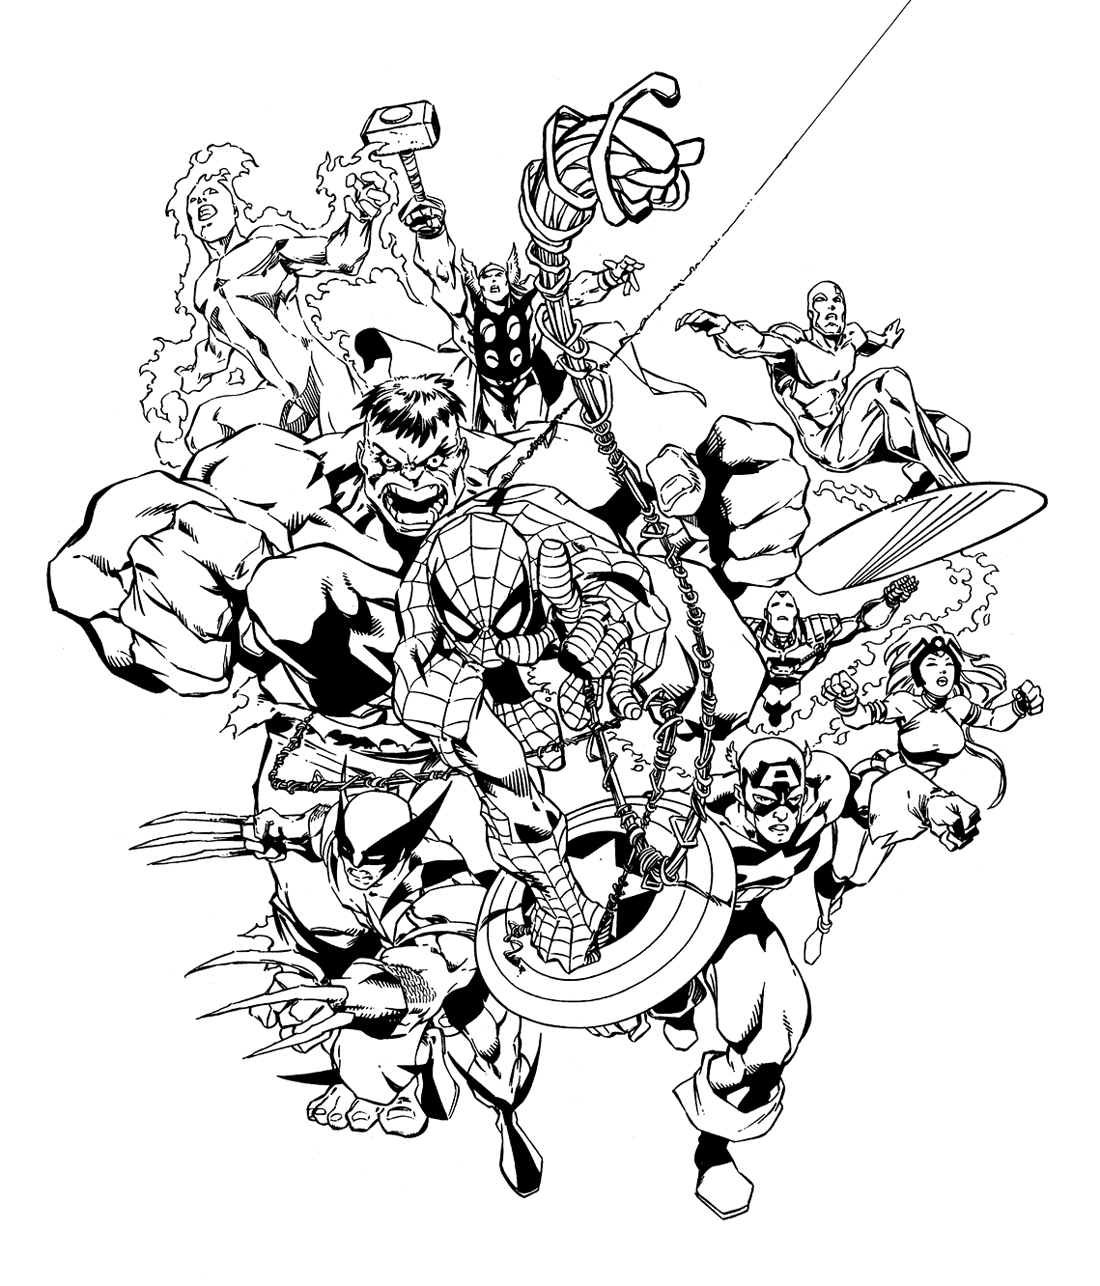 Simple Avengers coloring page to download for free